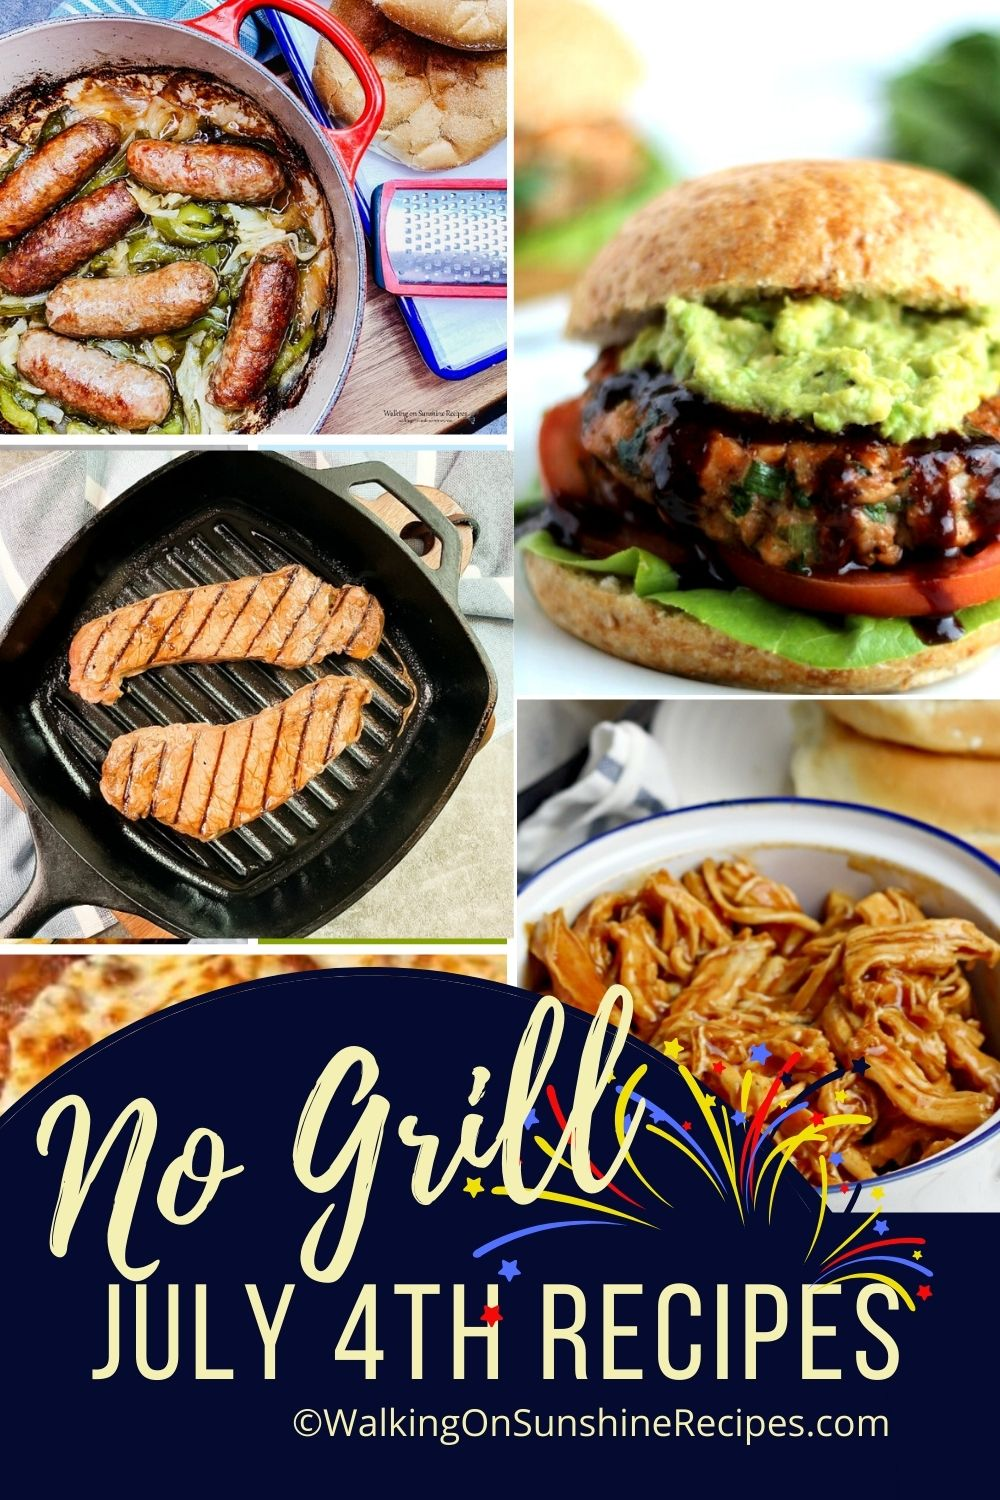 no grill recipes for July 4th.